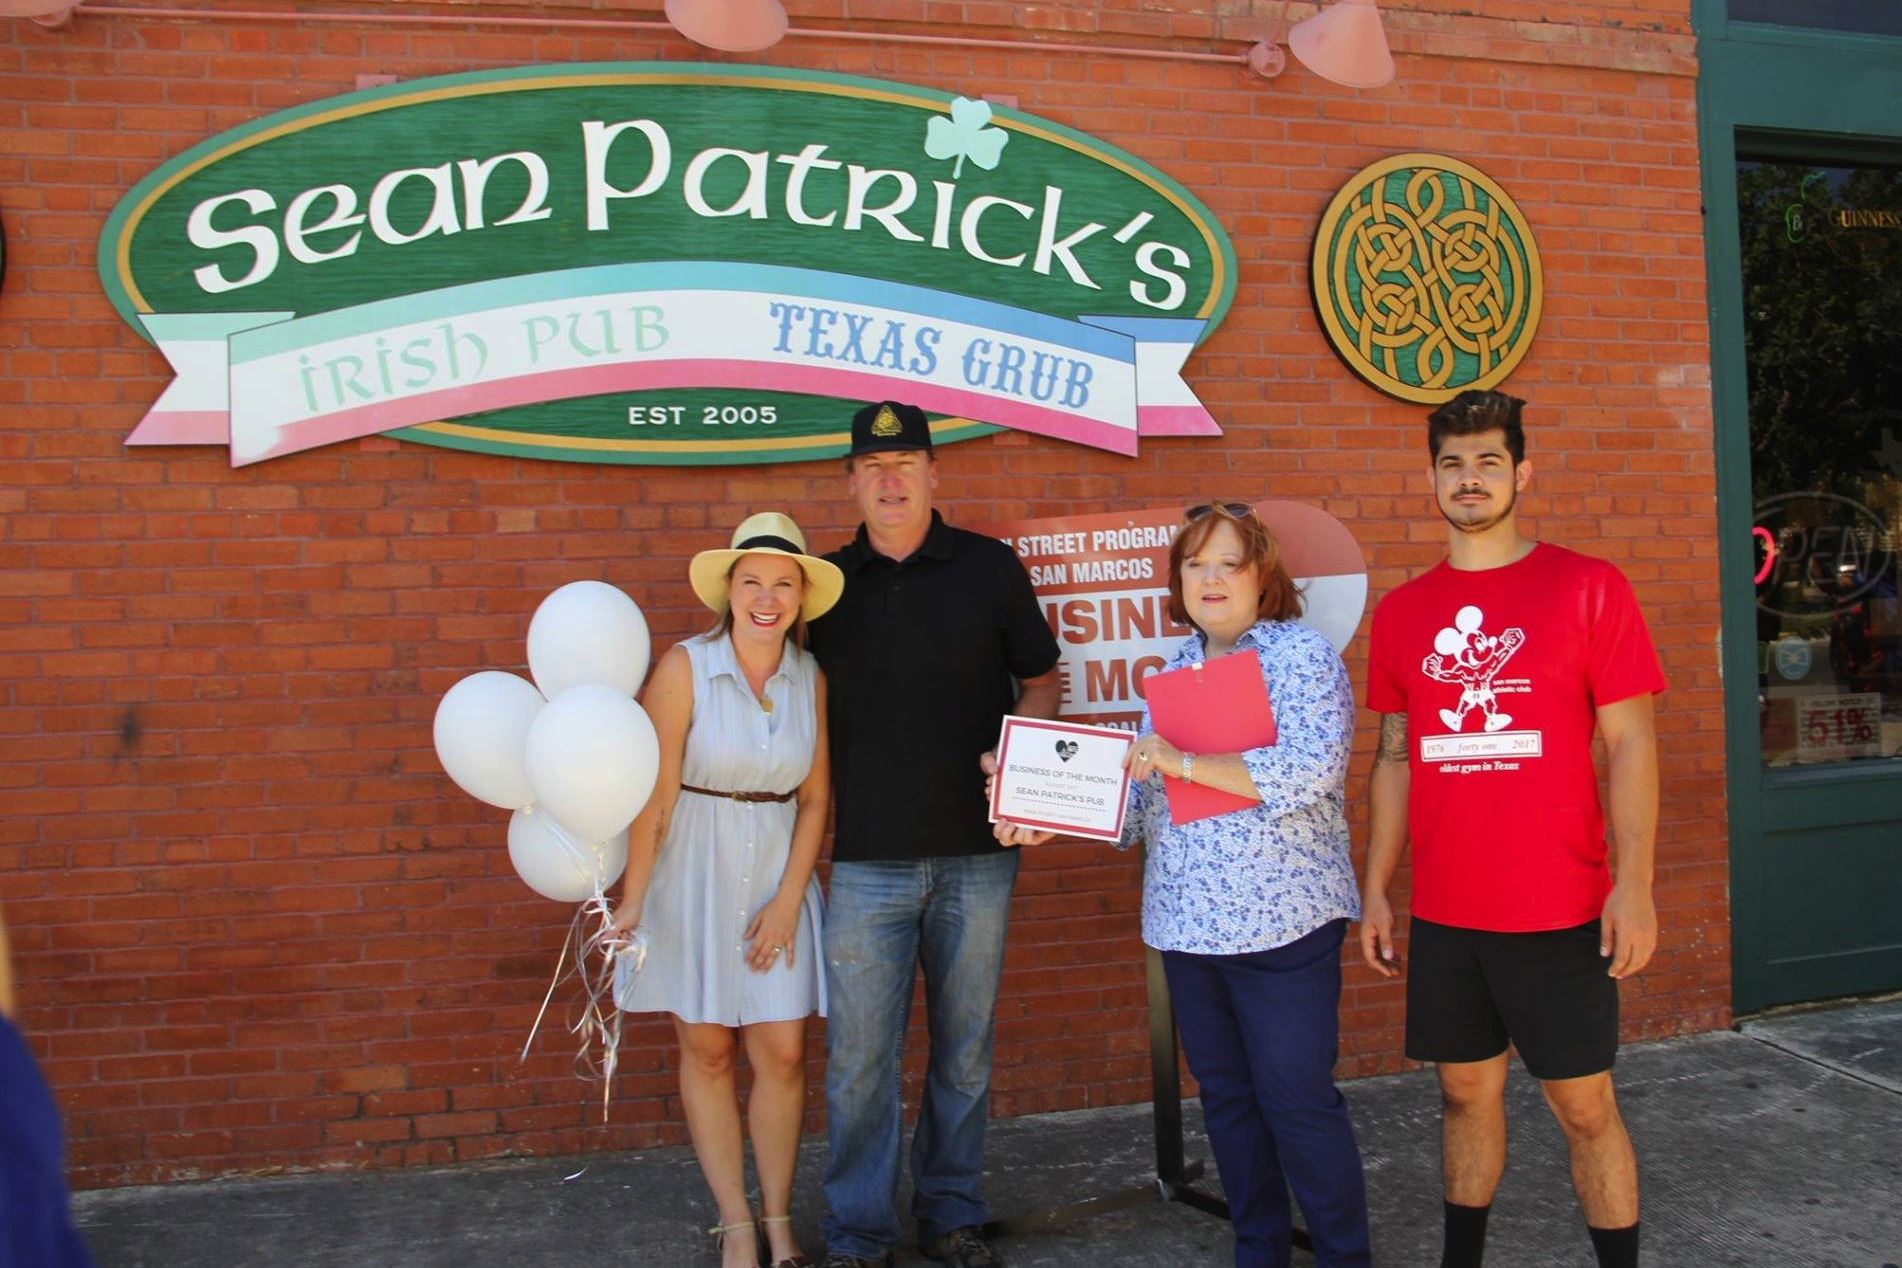 August Business of the Month Sean Patricks